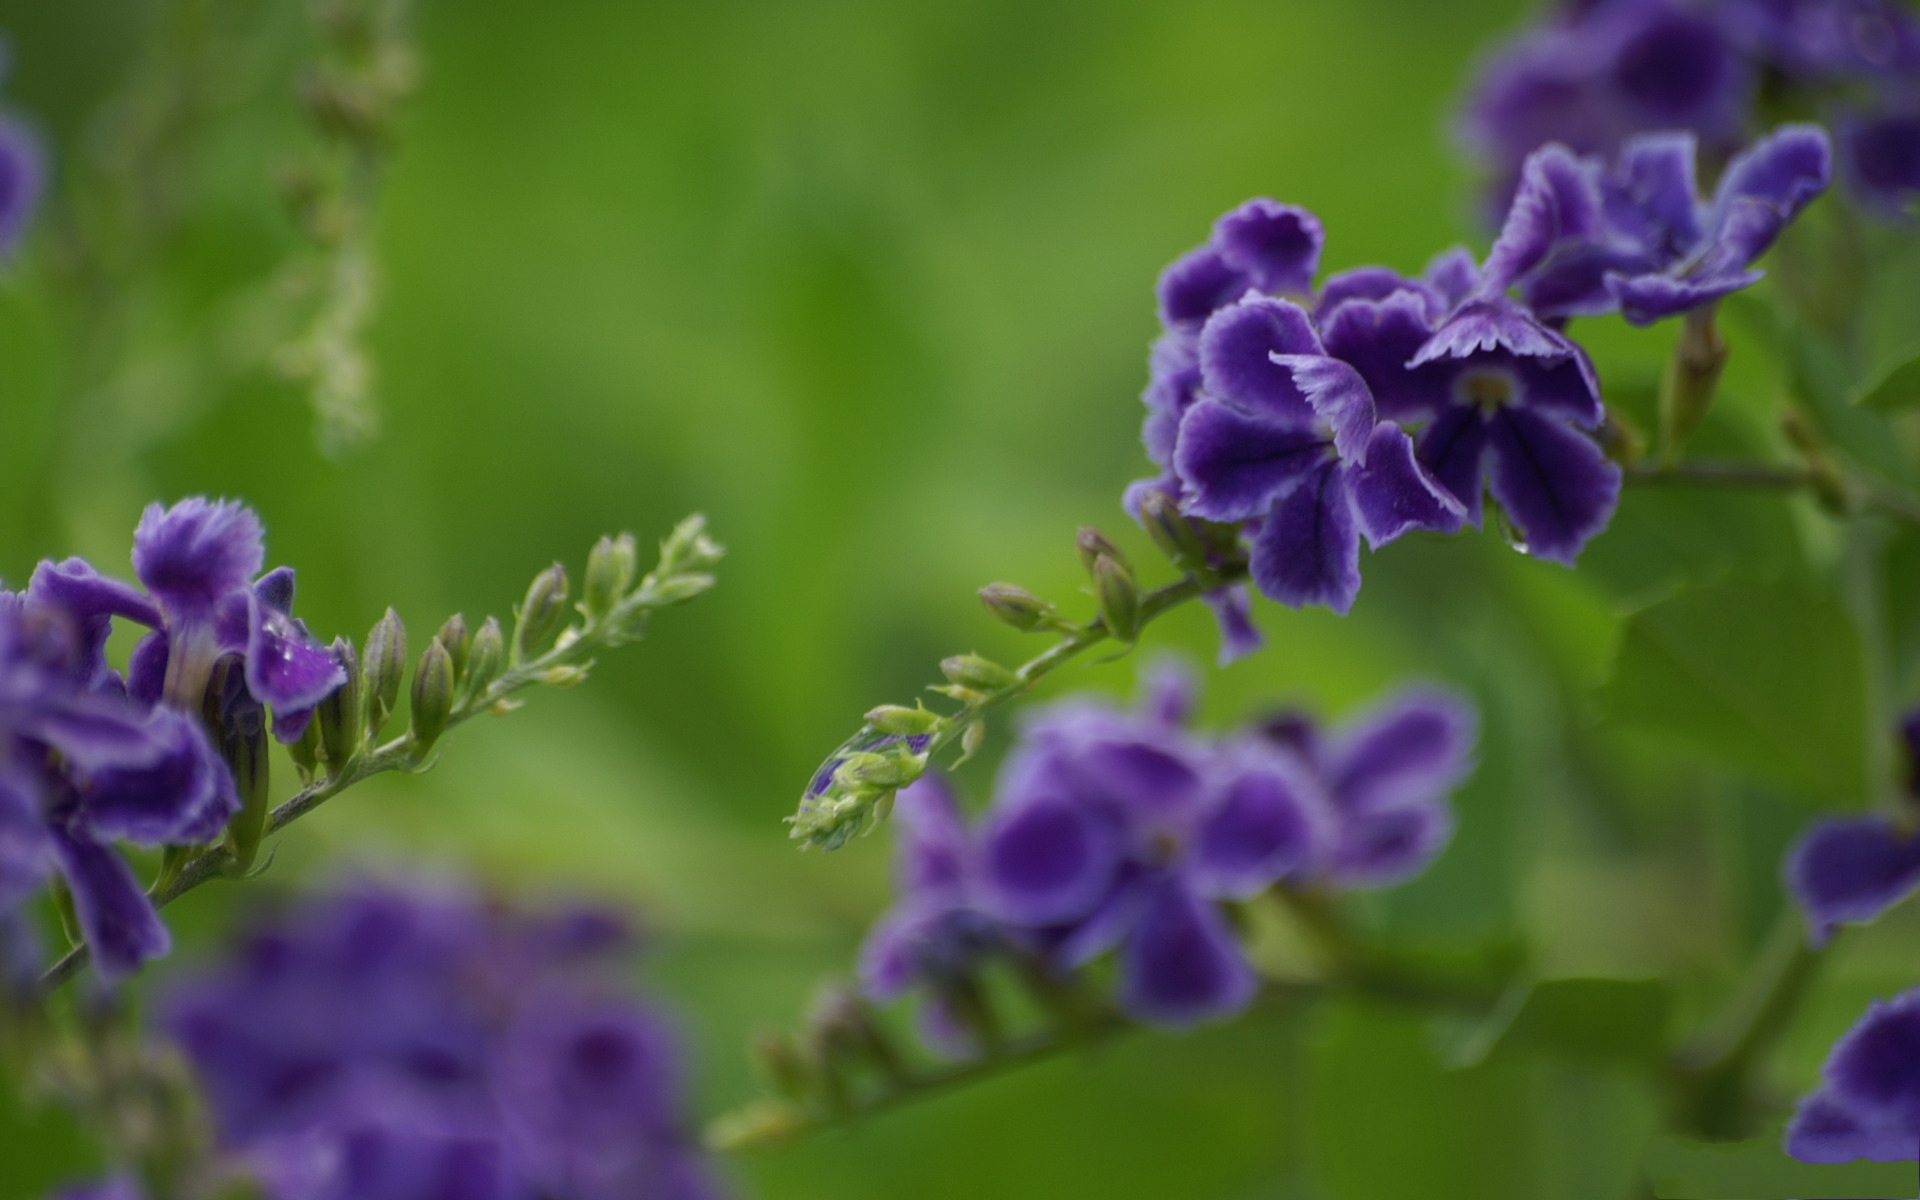 click to free download the wallpaper--Flower Photos, Purple Flowers on Green Background, Incredible Look 1920X1200 free wallpaper download